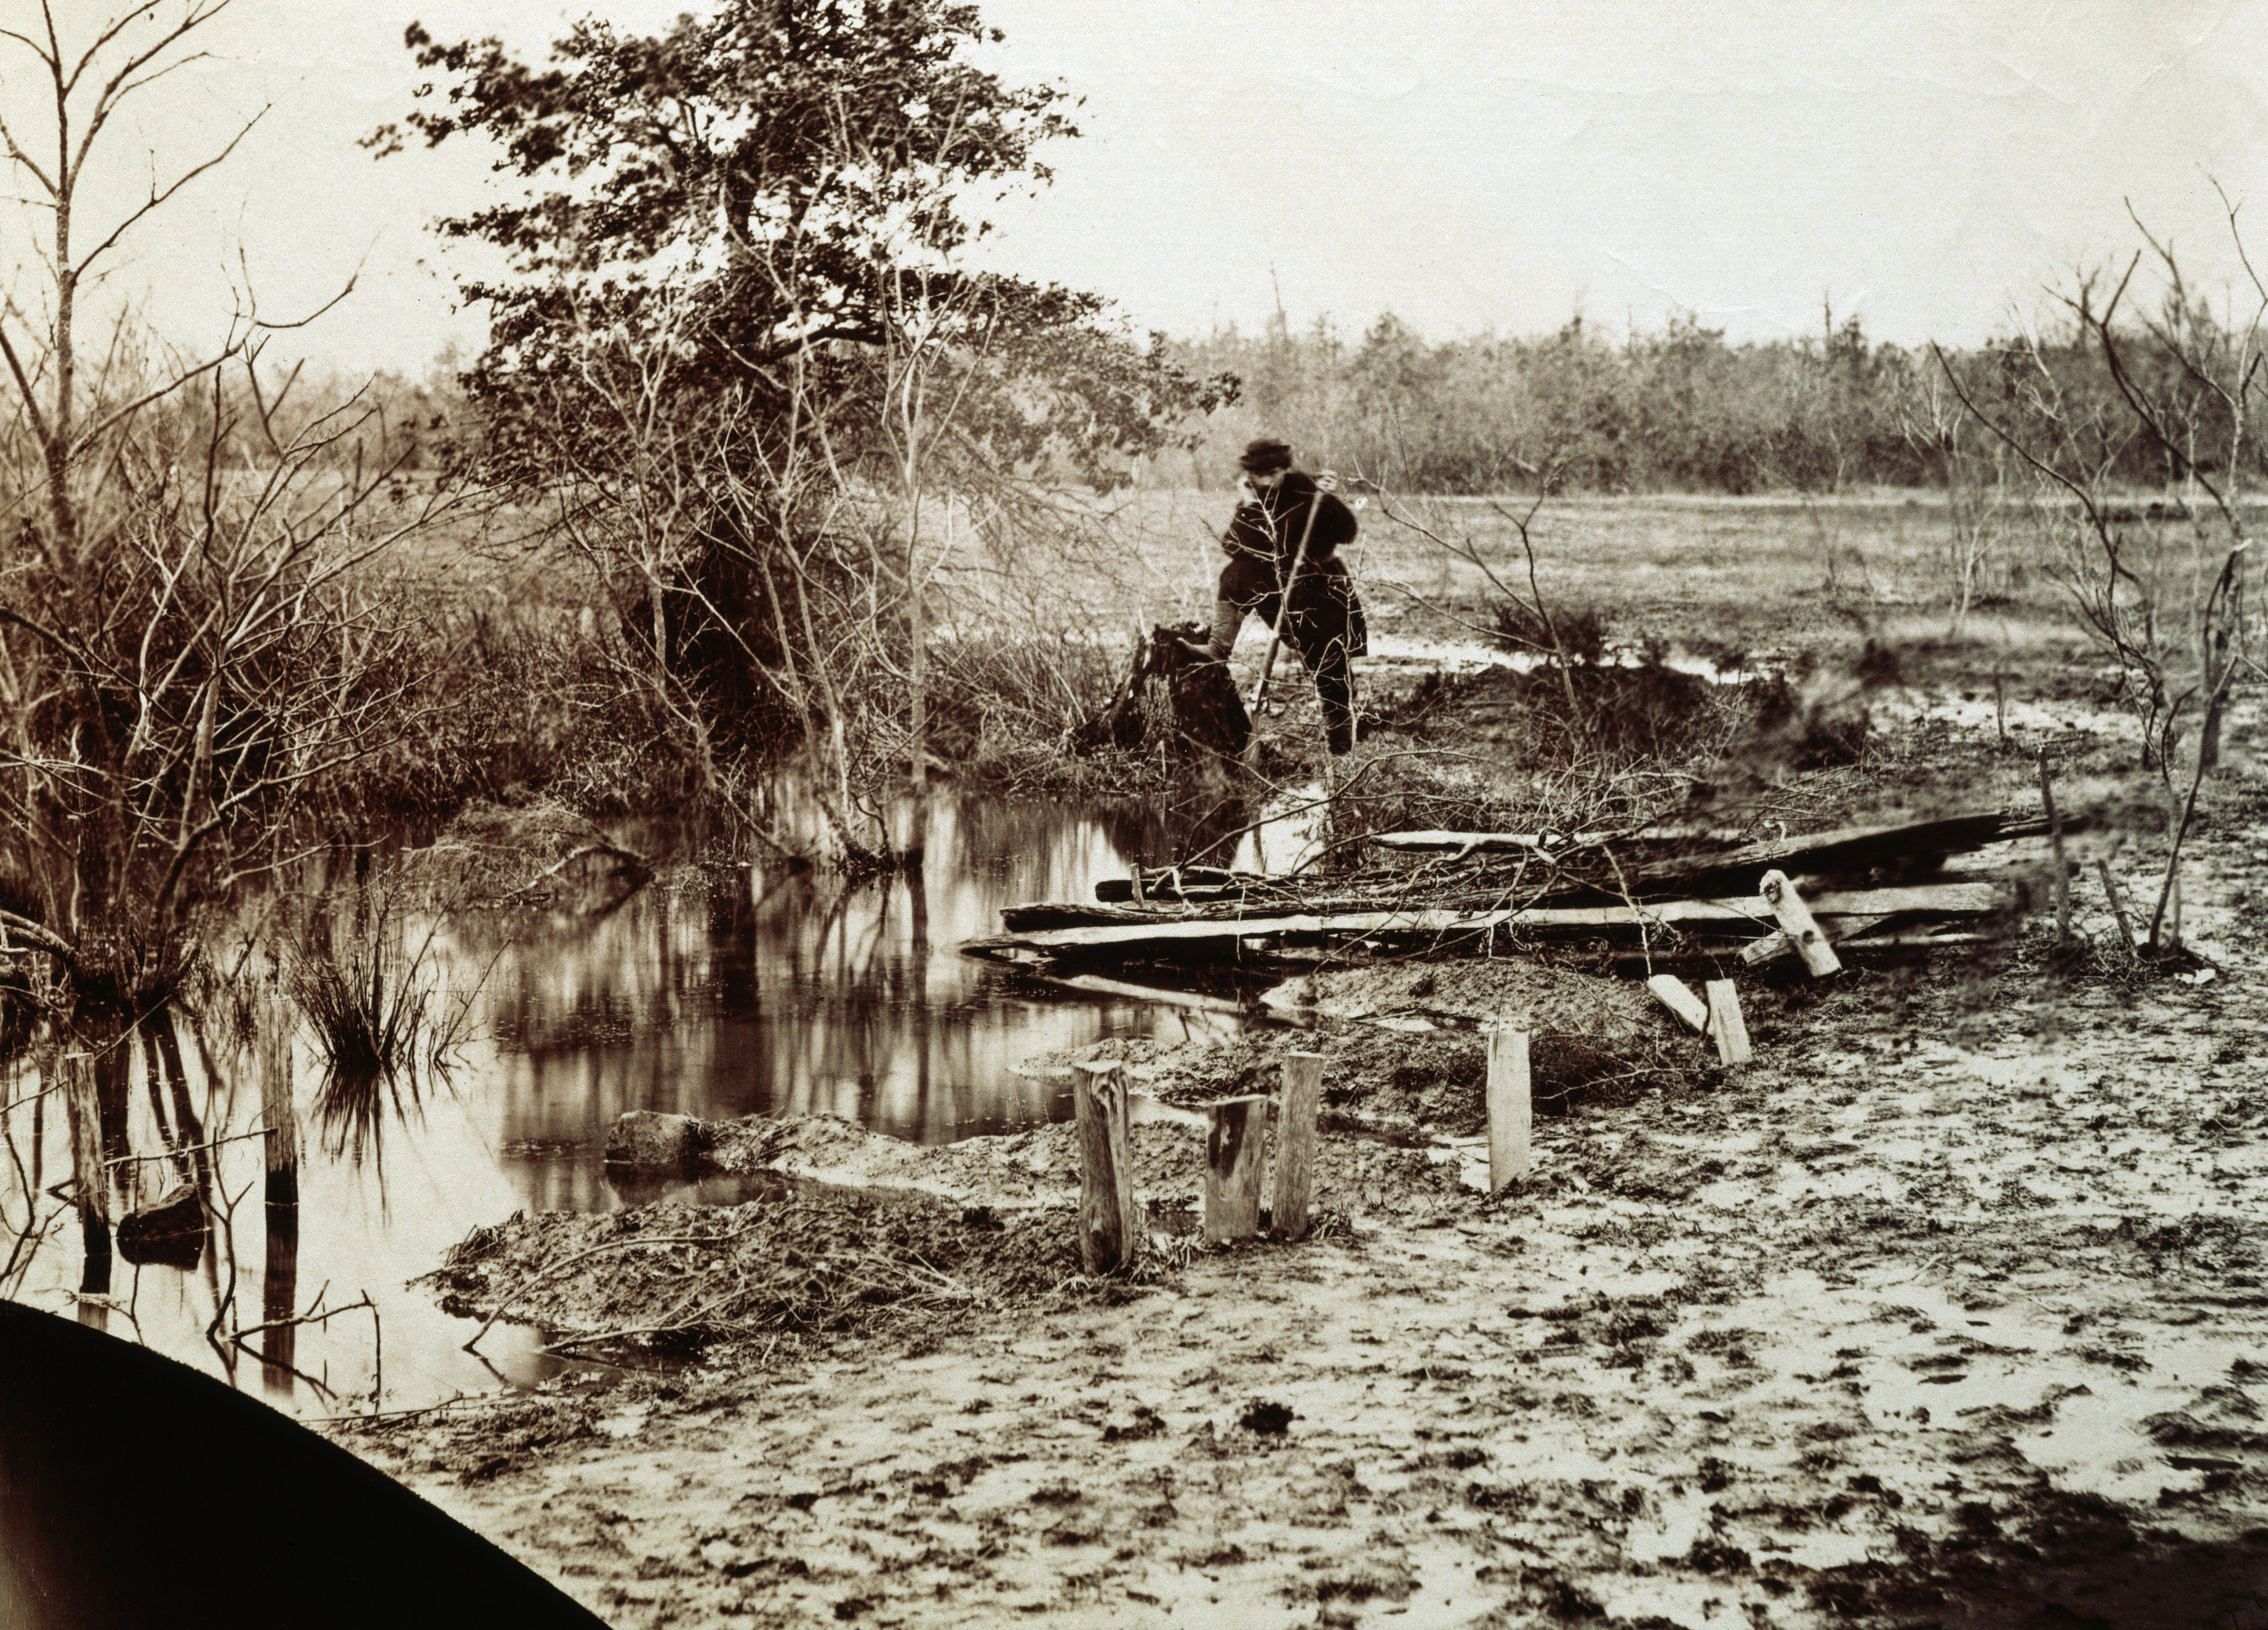 the battle of bull run history The battle developed slowly but eventually involved over 35,000 federal troops and 32,000 confederate forces federal forces under general irwin mcdowell attempted to flank confederate positions by crossing bull run but were turned back.